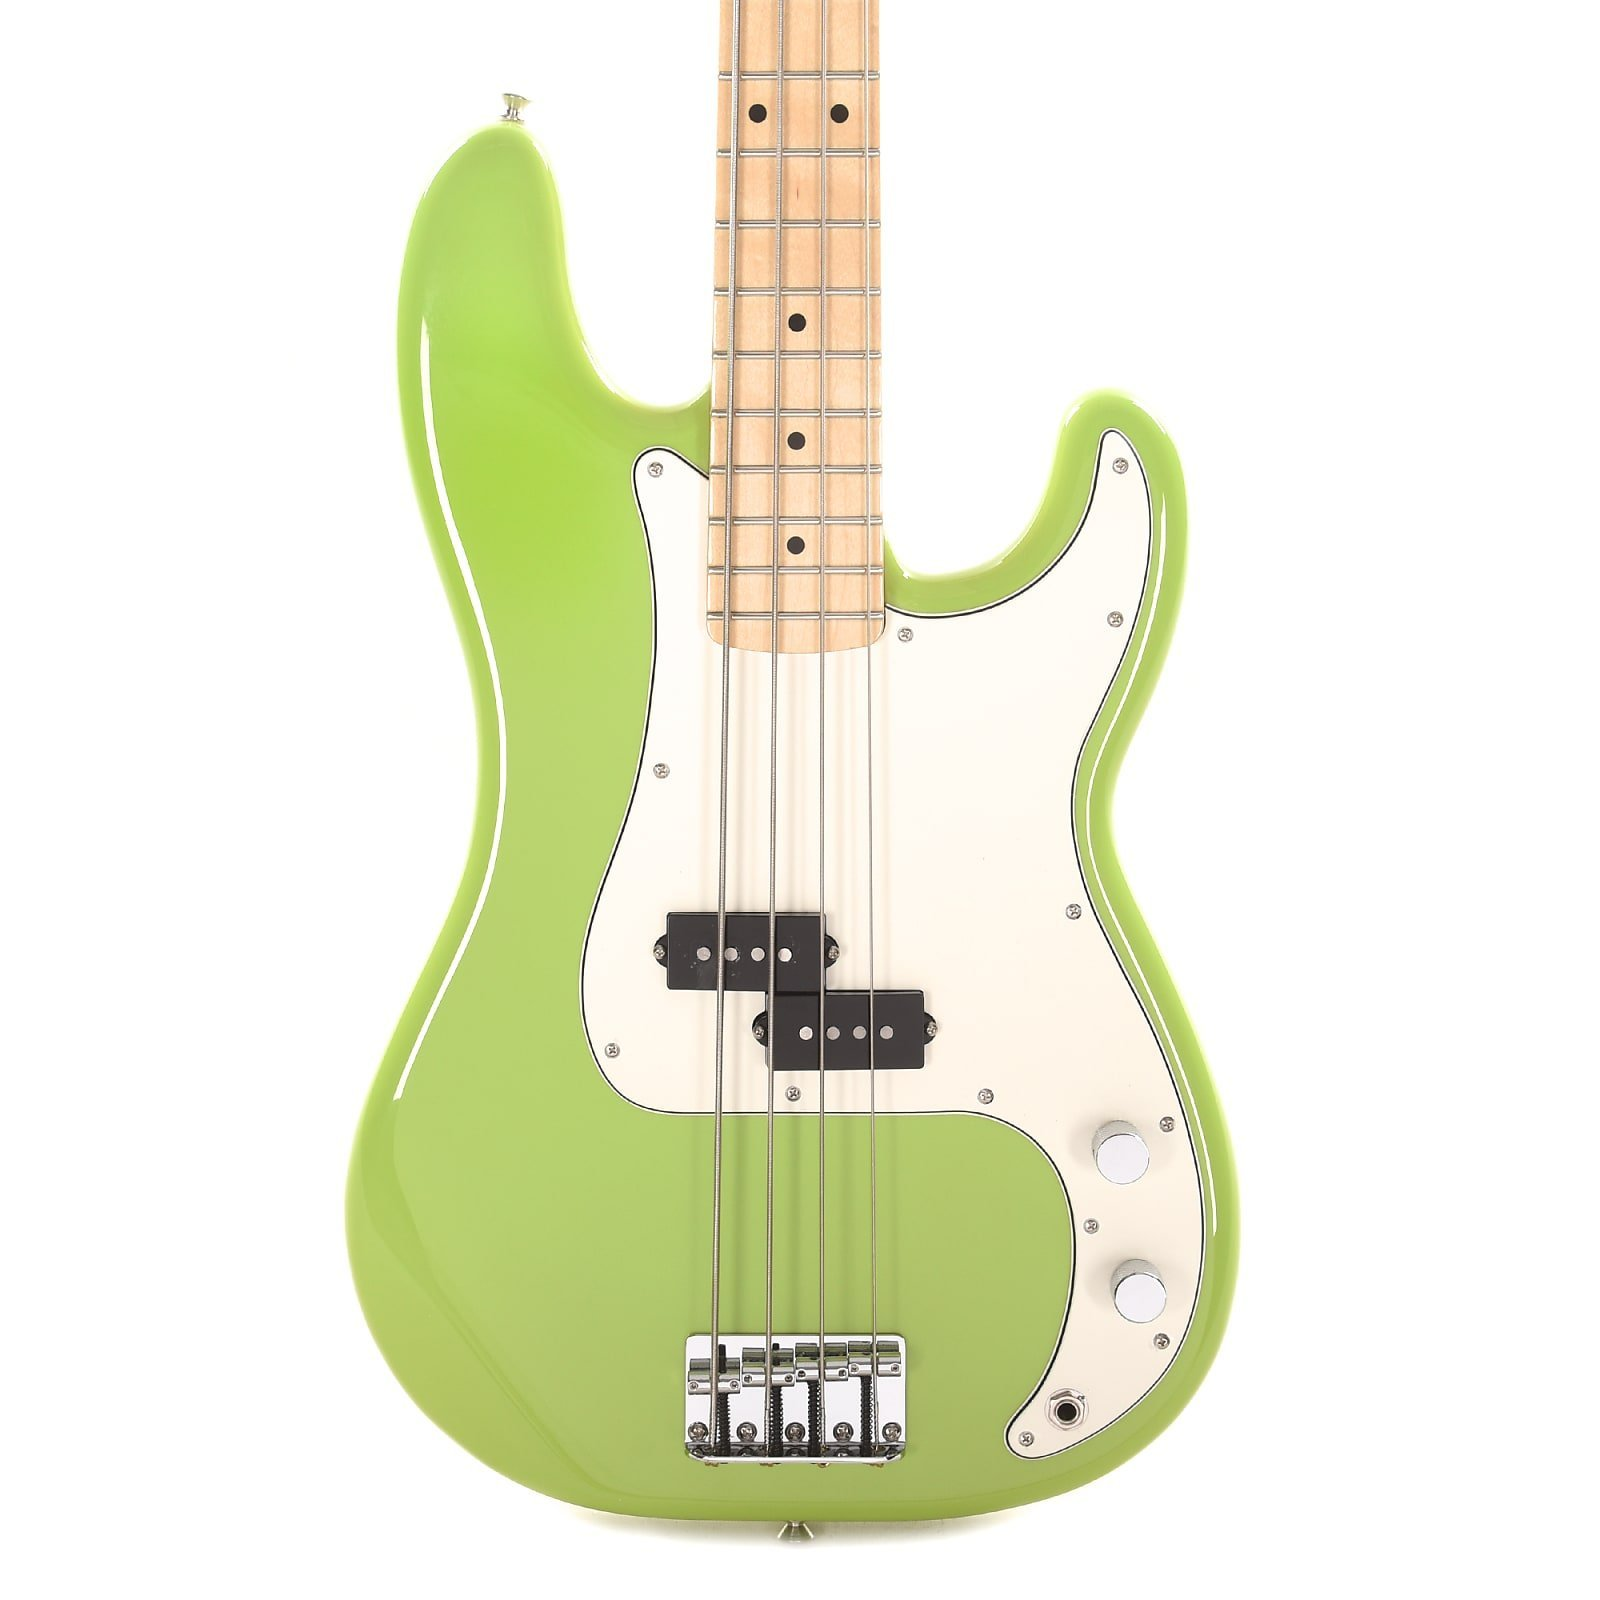 Fender Player's  P-Bass Limited Edition with a Maple Neck in Electron Green